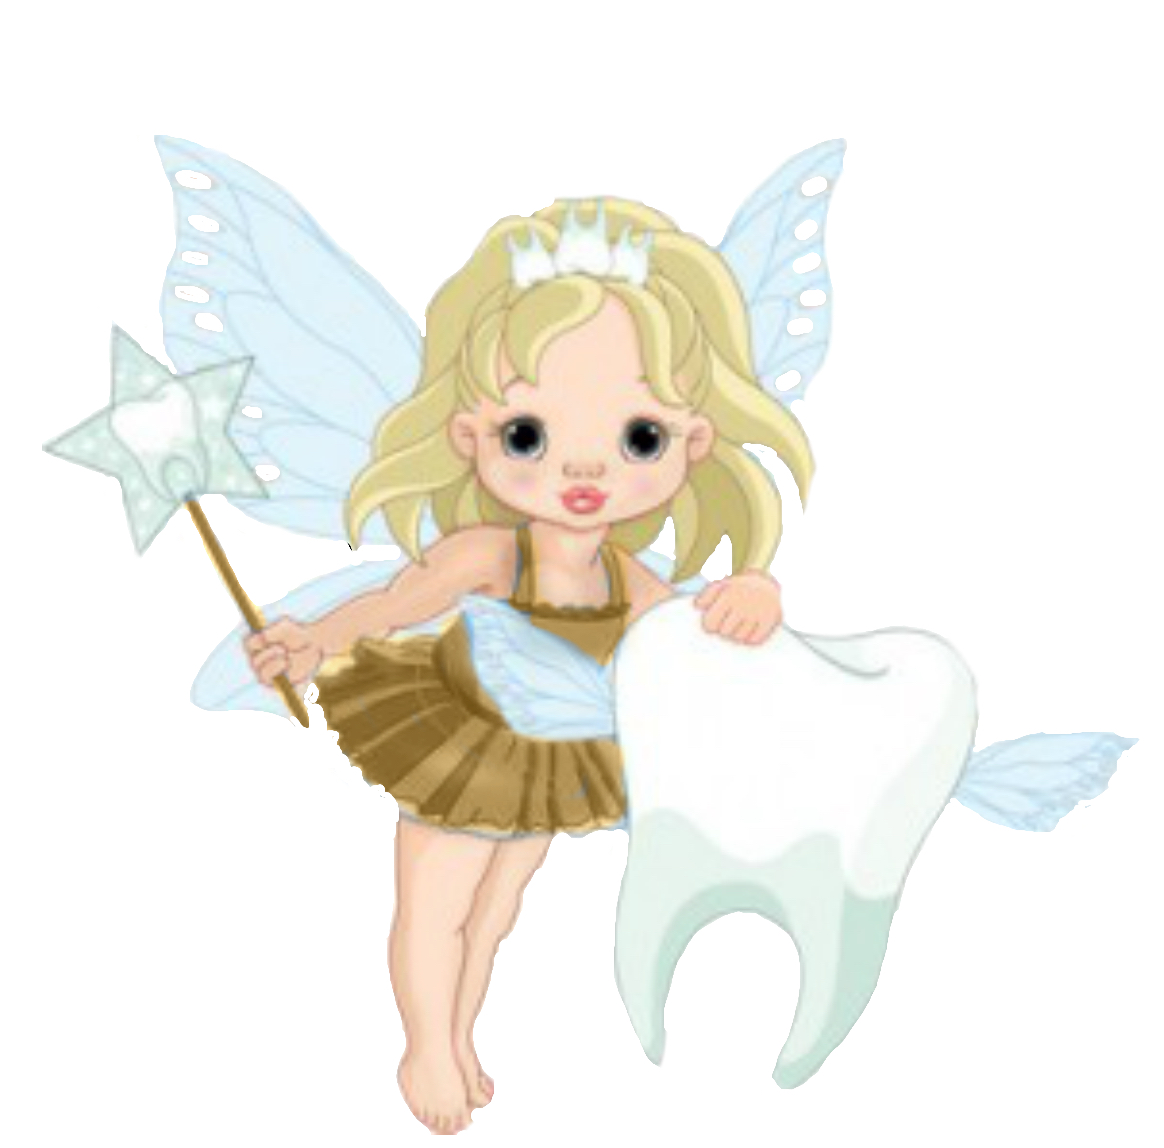 Dentaltown - What is the Tooth Fairy paying these days? Per tooth. - Tooth Fairy PNG HD